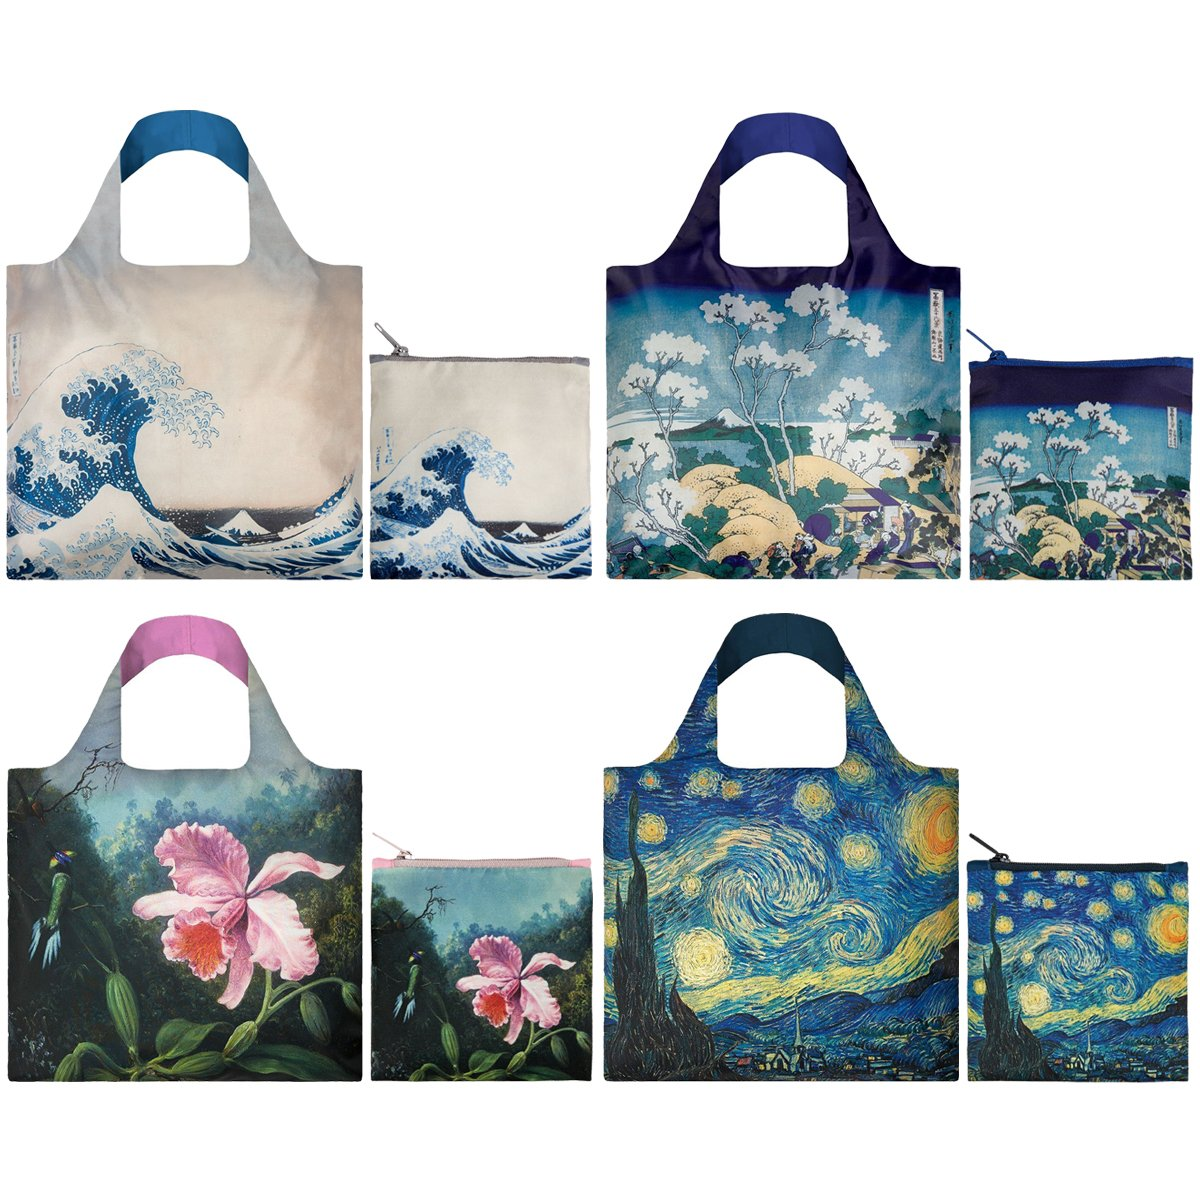 LOQI Museum4 Collection Pouch, Set of 4 Reusable Bags